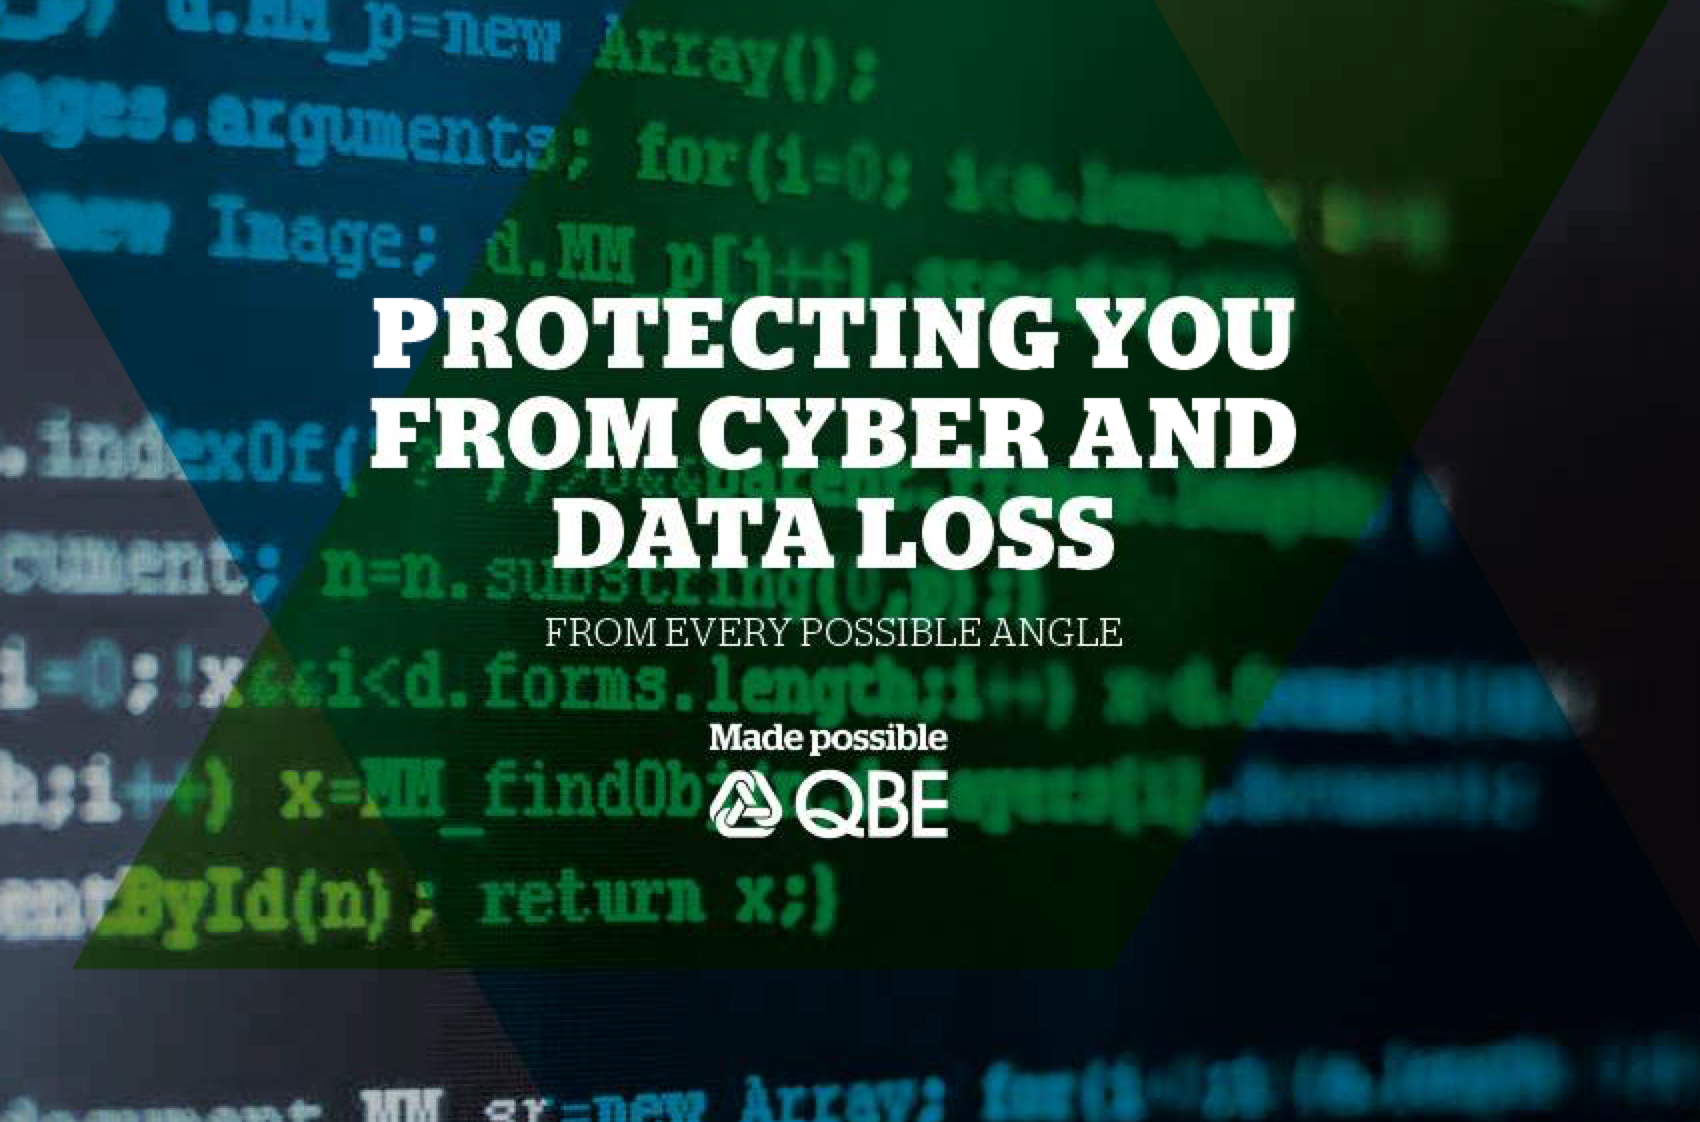 Protecting your business from cyber and data loss